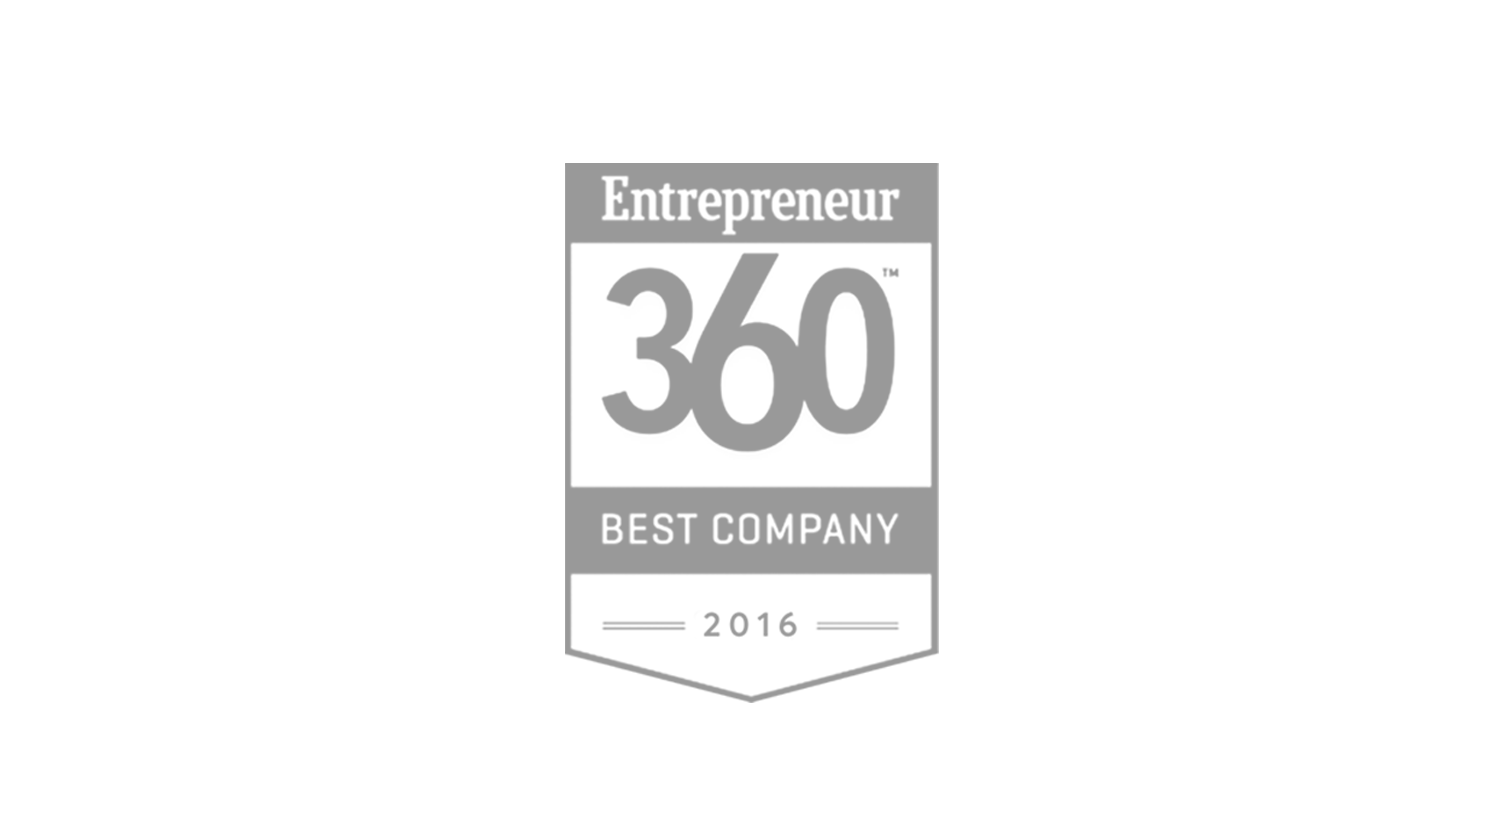 #14, Best Small Business Based on Impact, Innovation, Growth & Leadership -